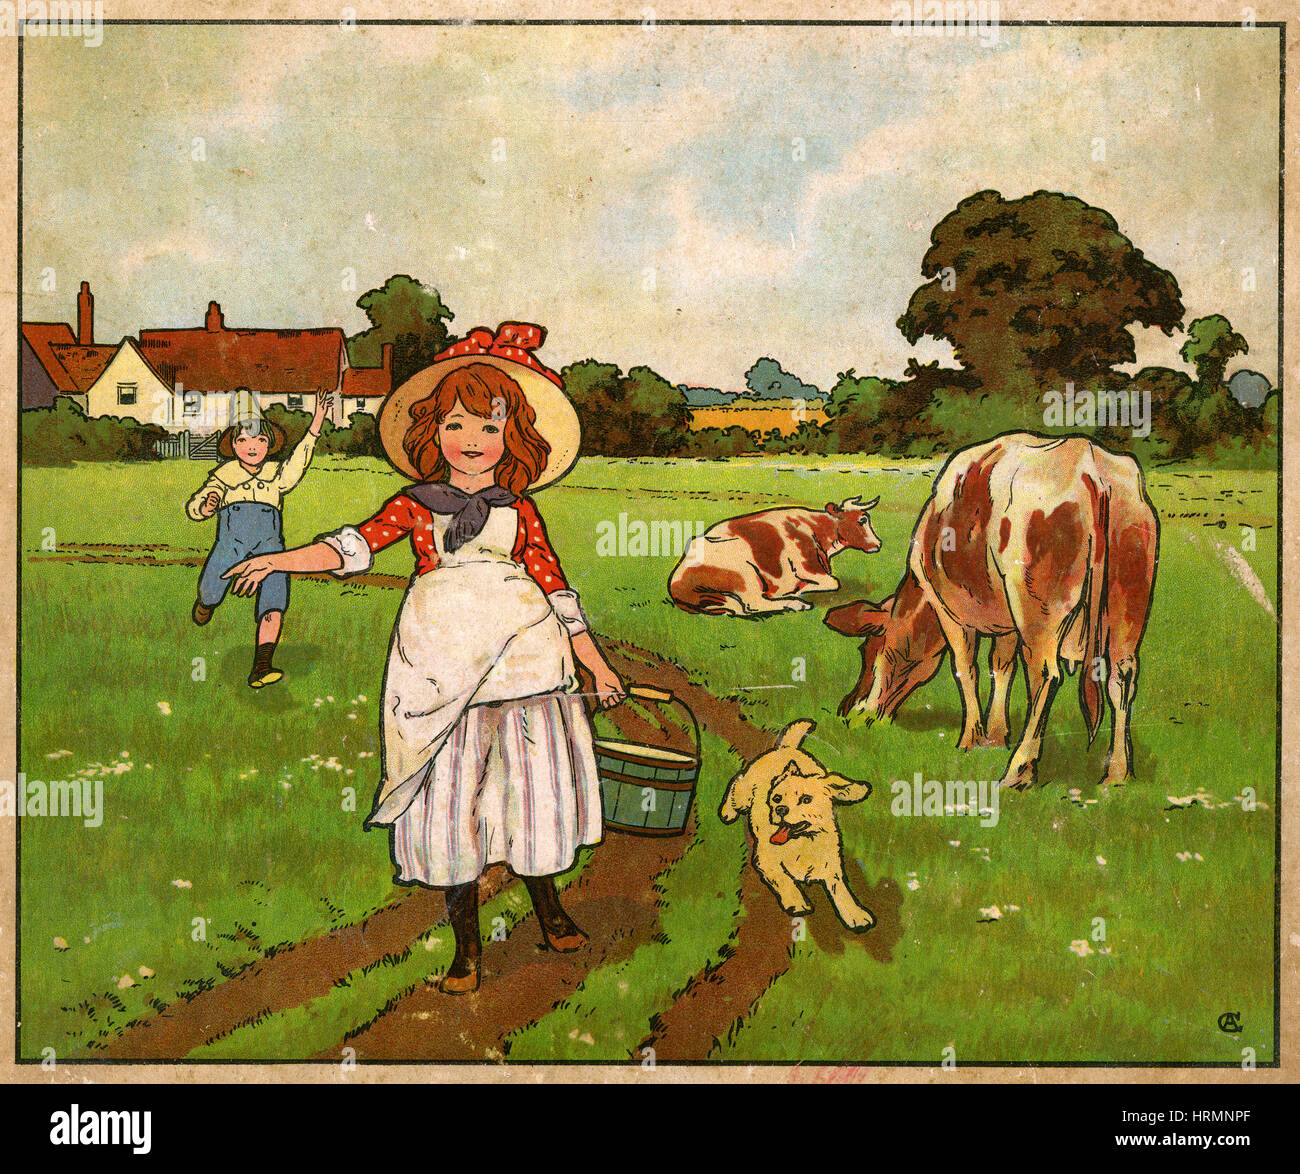 Antique c1890 English children's book illustration, Molly the Milkmaid. - Stock Image